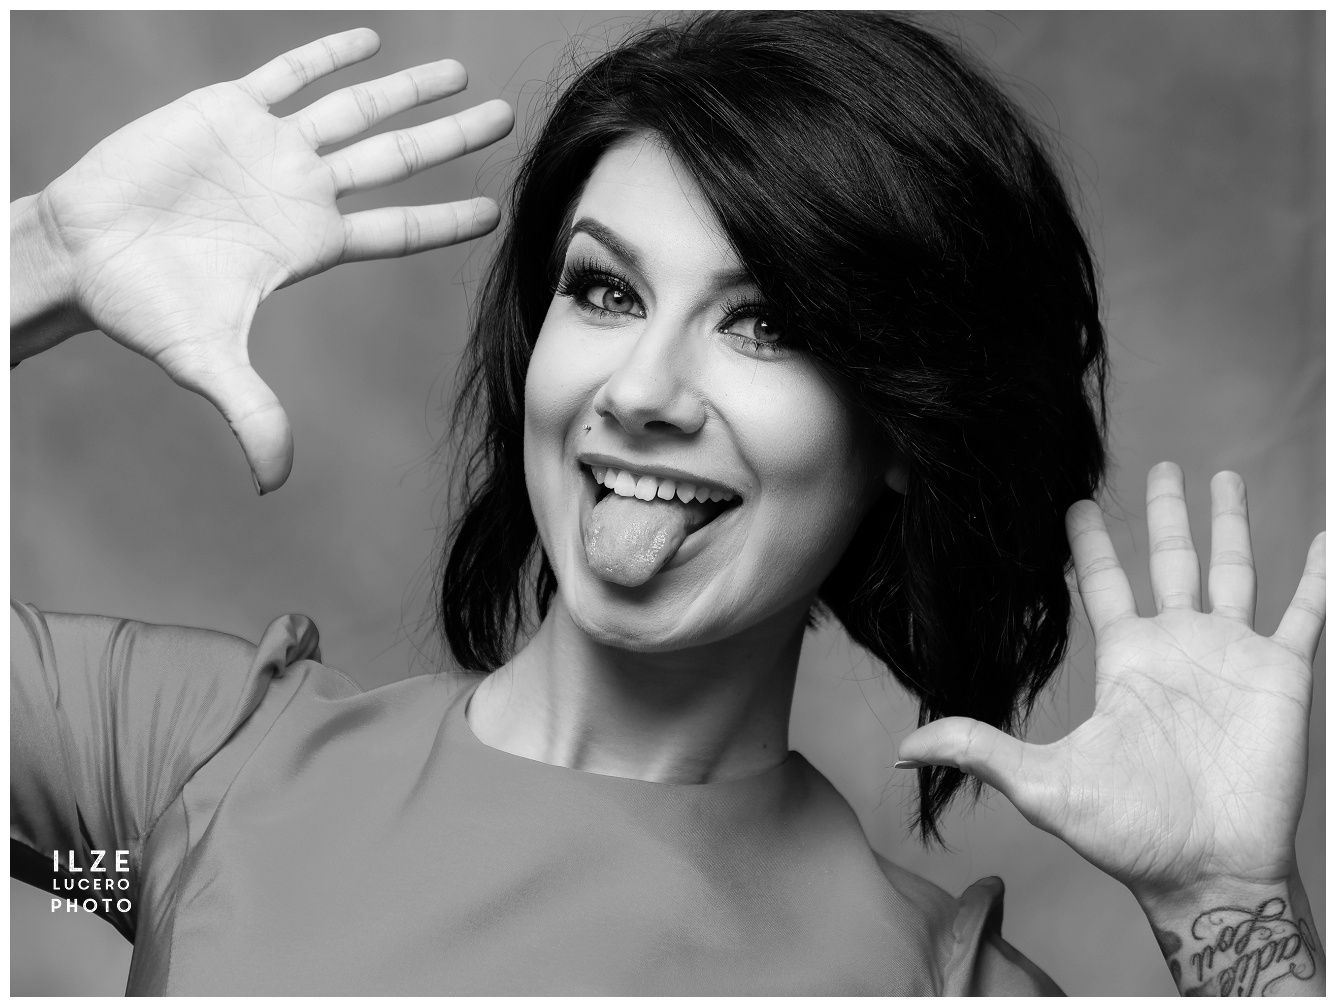 Goofy fun outtake from a fun photo session -  black and white photo of a beautiful woman